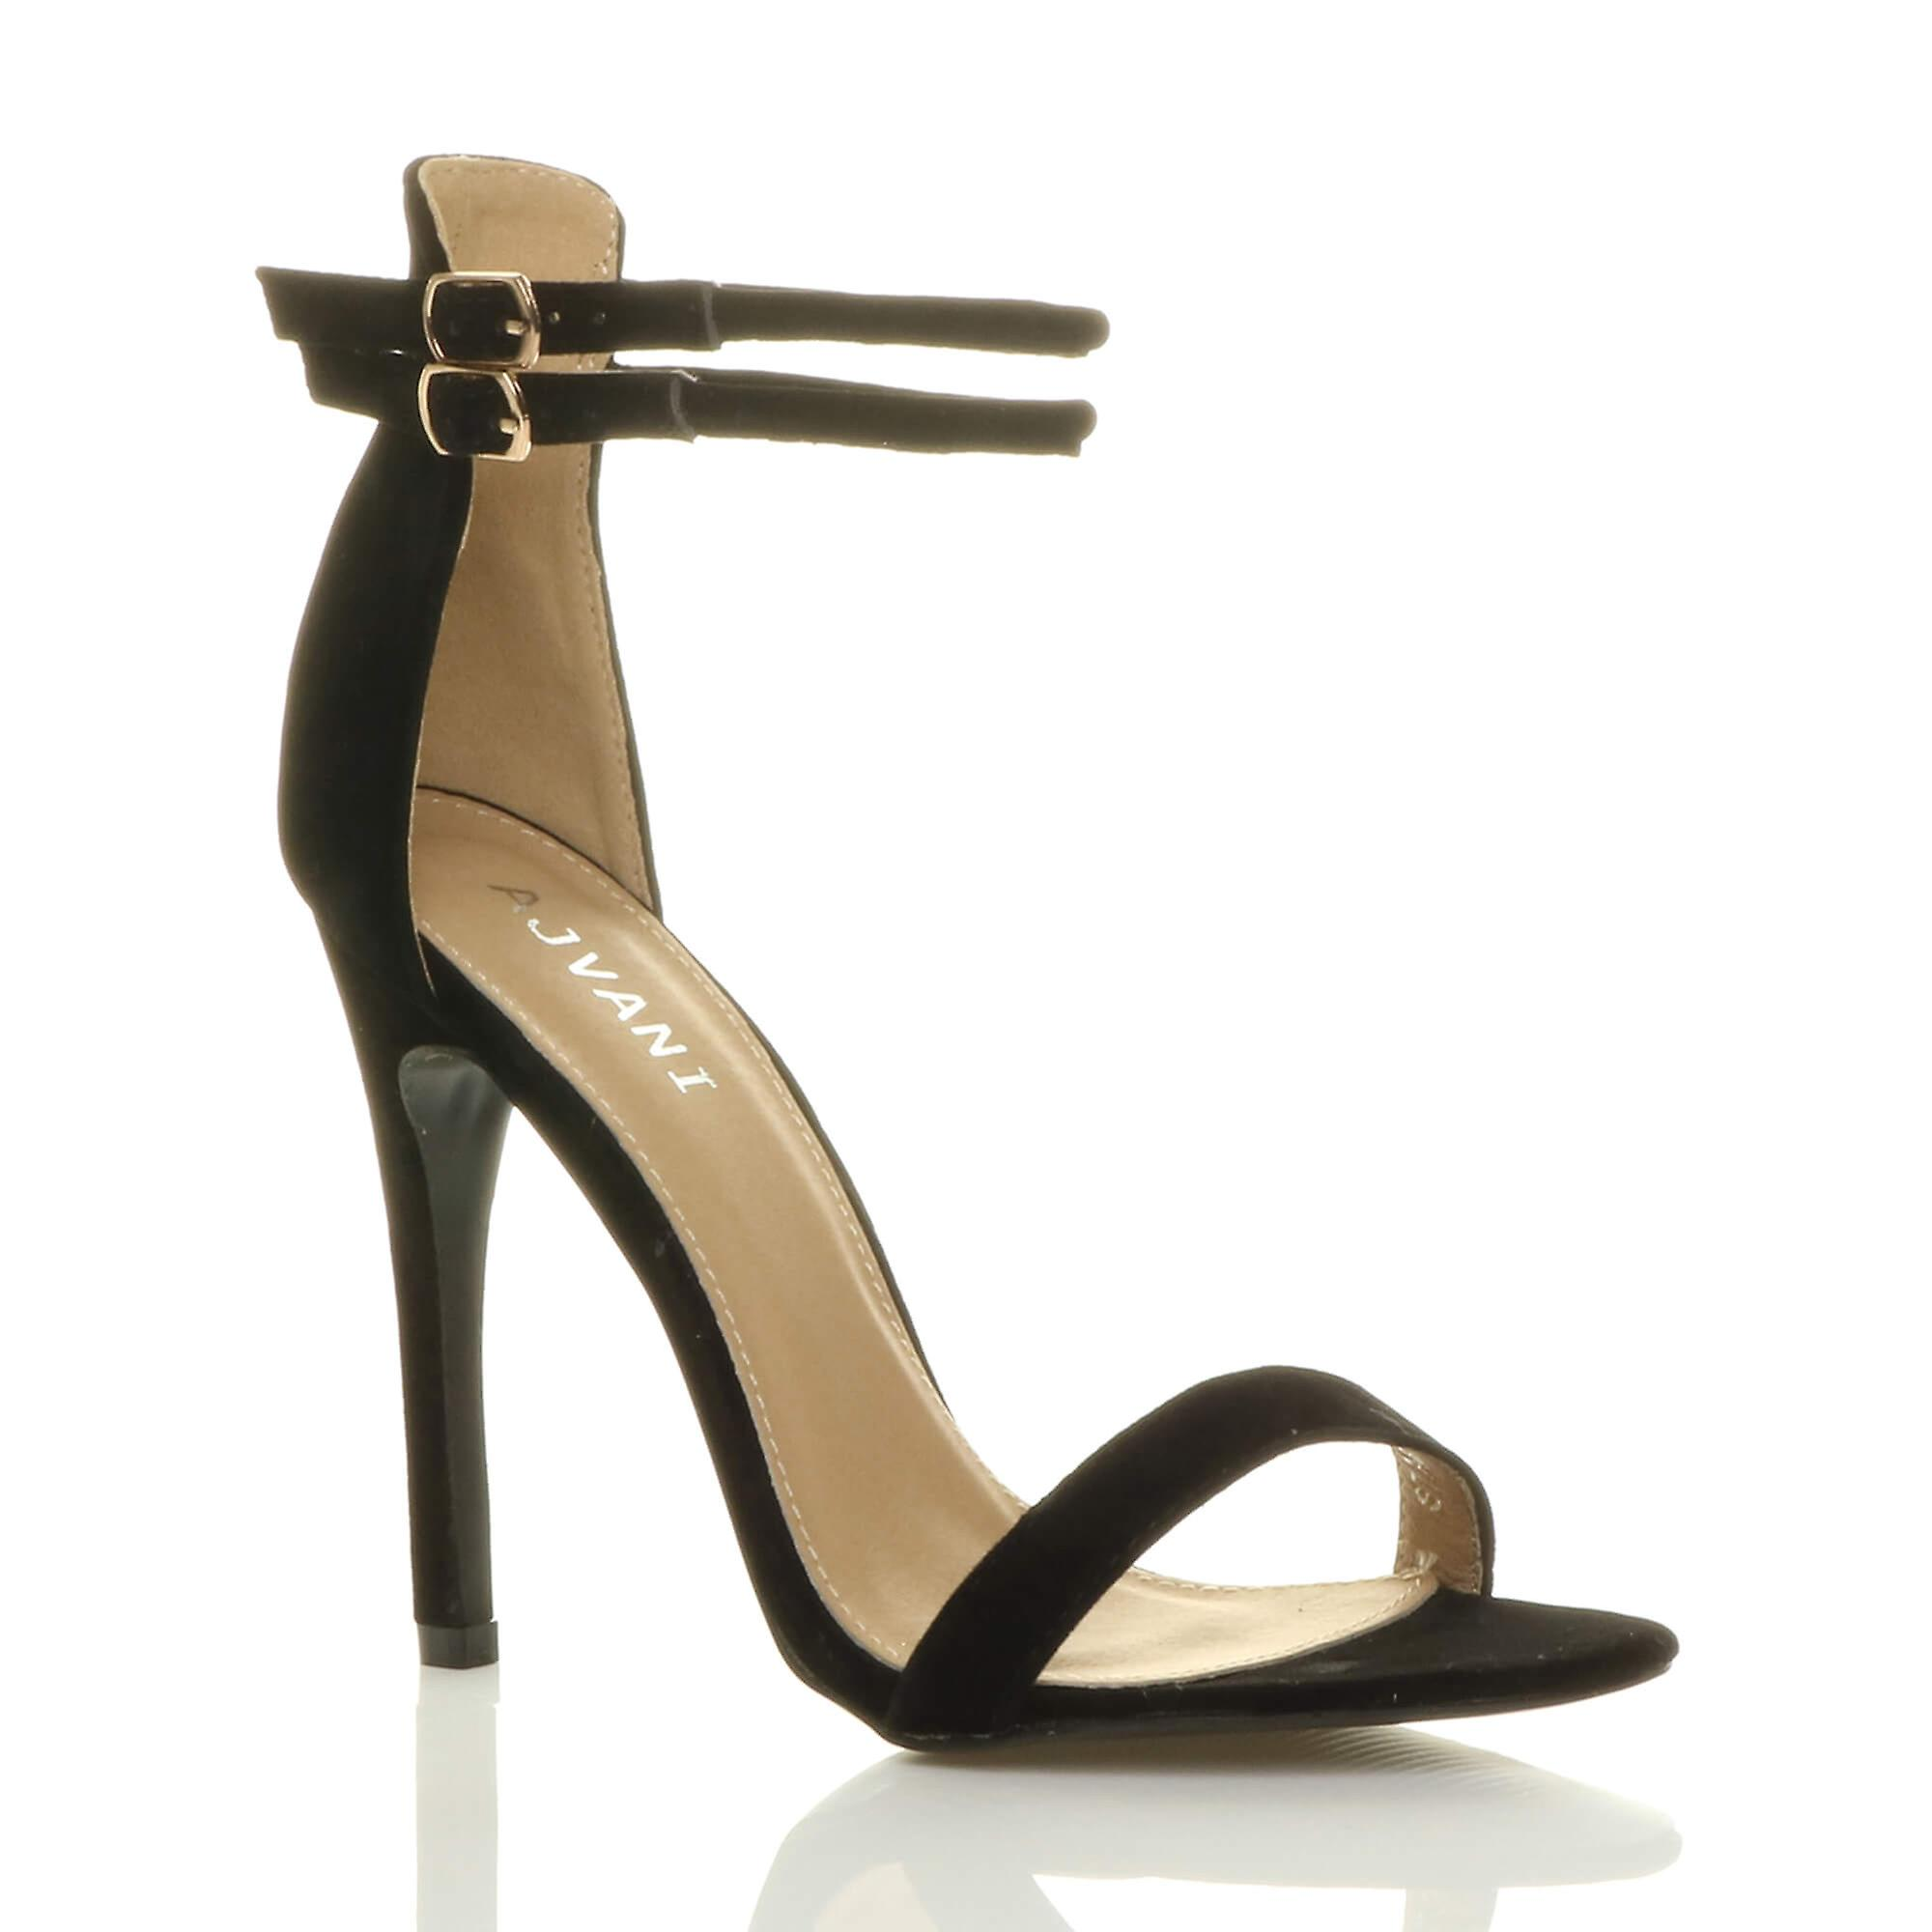 Ajvani womens stiletto high heel barely there sandals double strap buckle party sandals there shoes:Taobao:Gentleman/Lady 7909e4